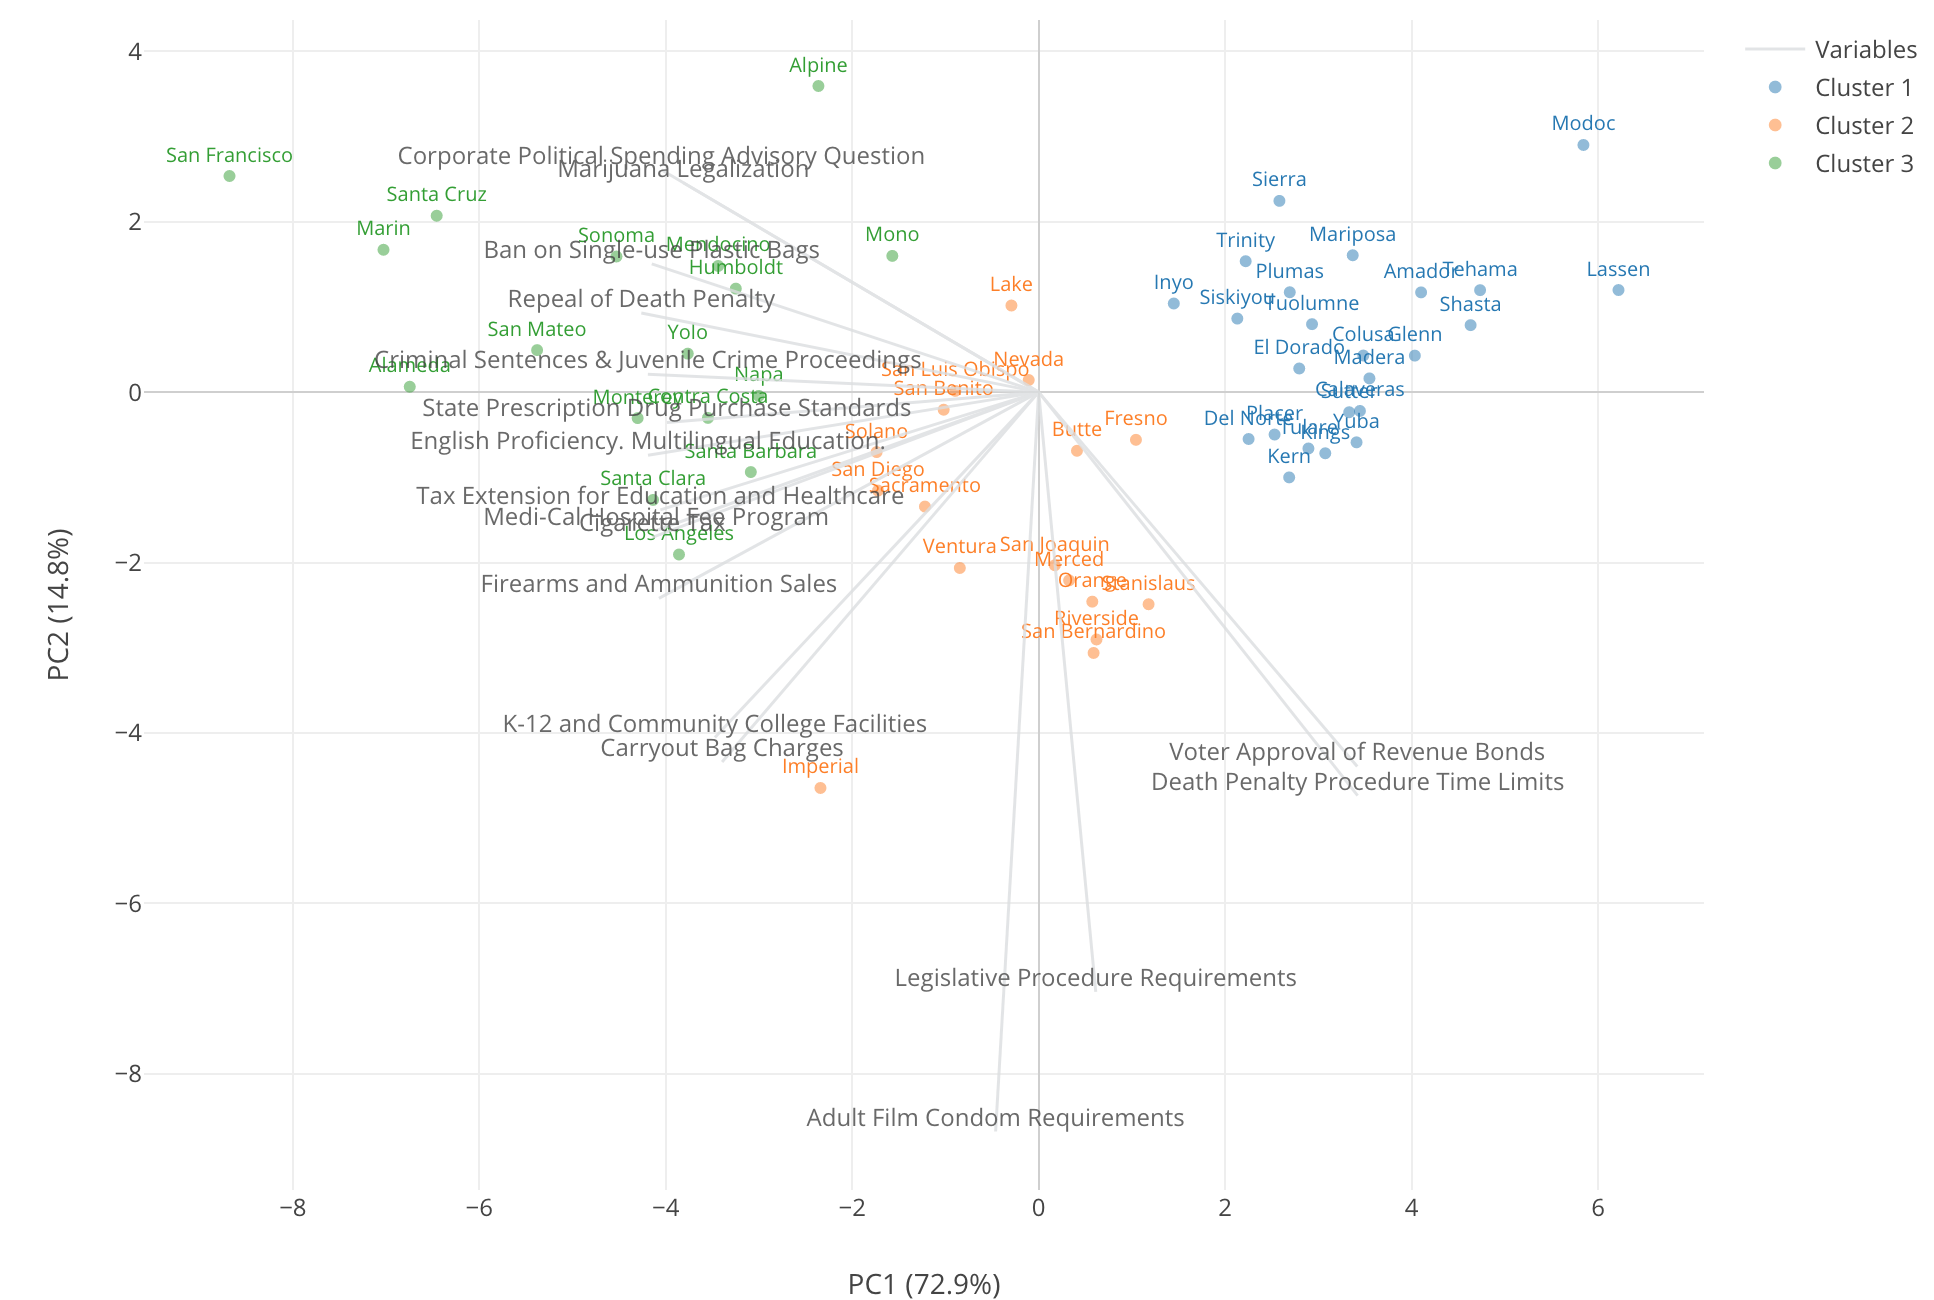 Visualizing K-Means Clustering Results to Understand the